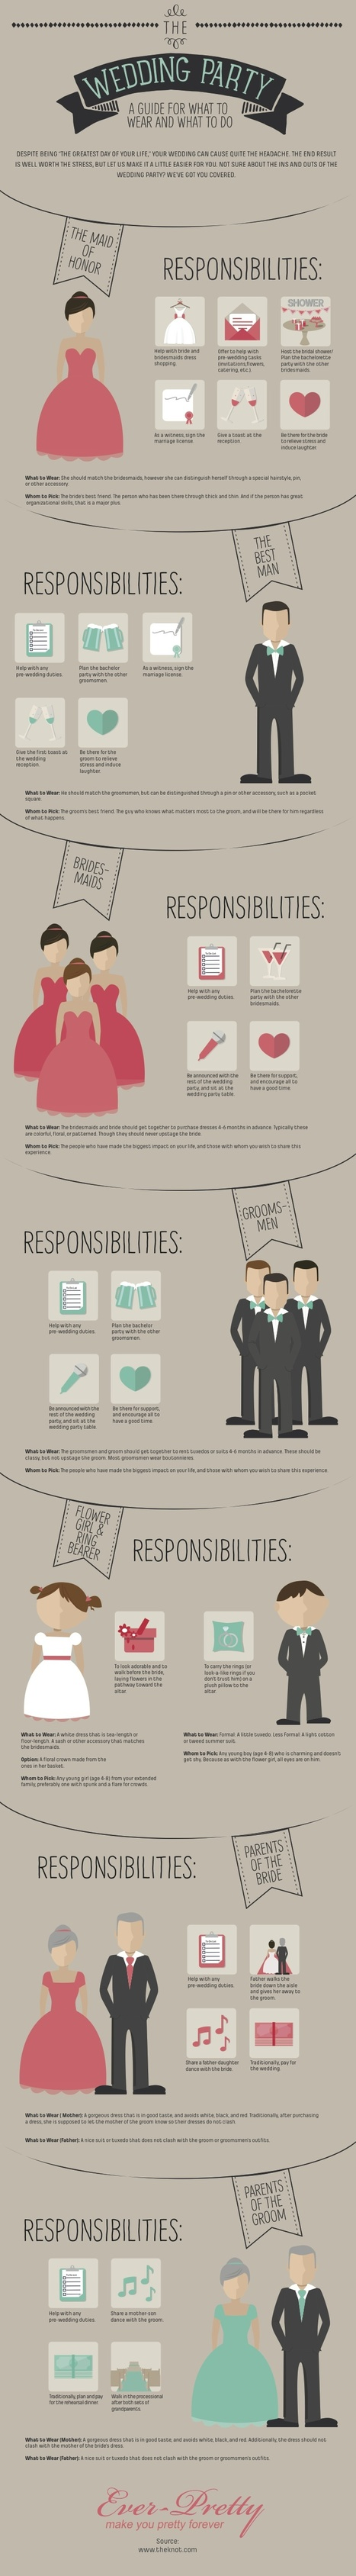 The Wedding Party [Infographic] | Ever-Pretty | lifestyle | Scoop.it